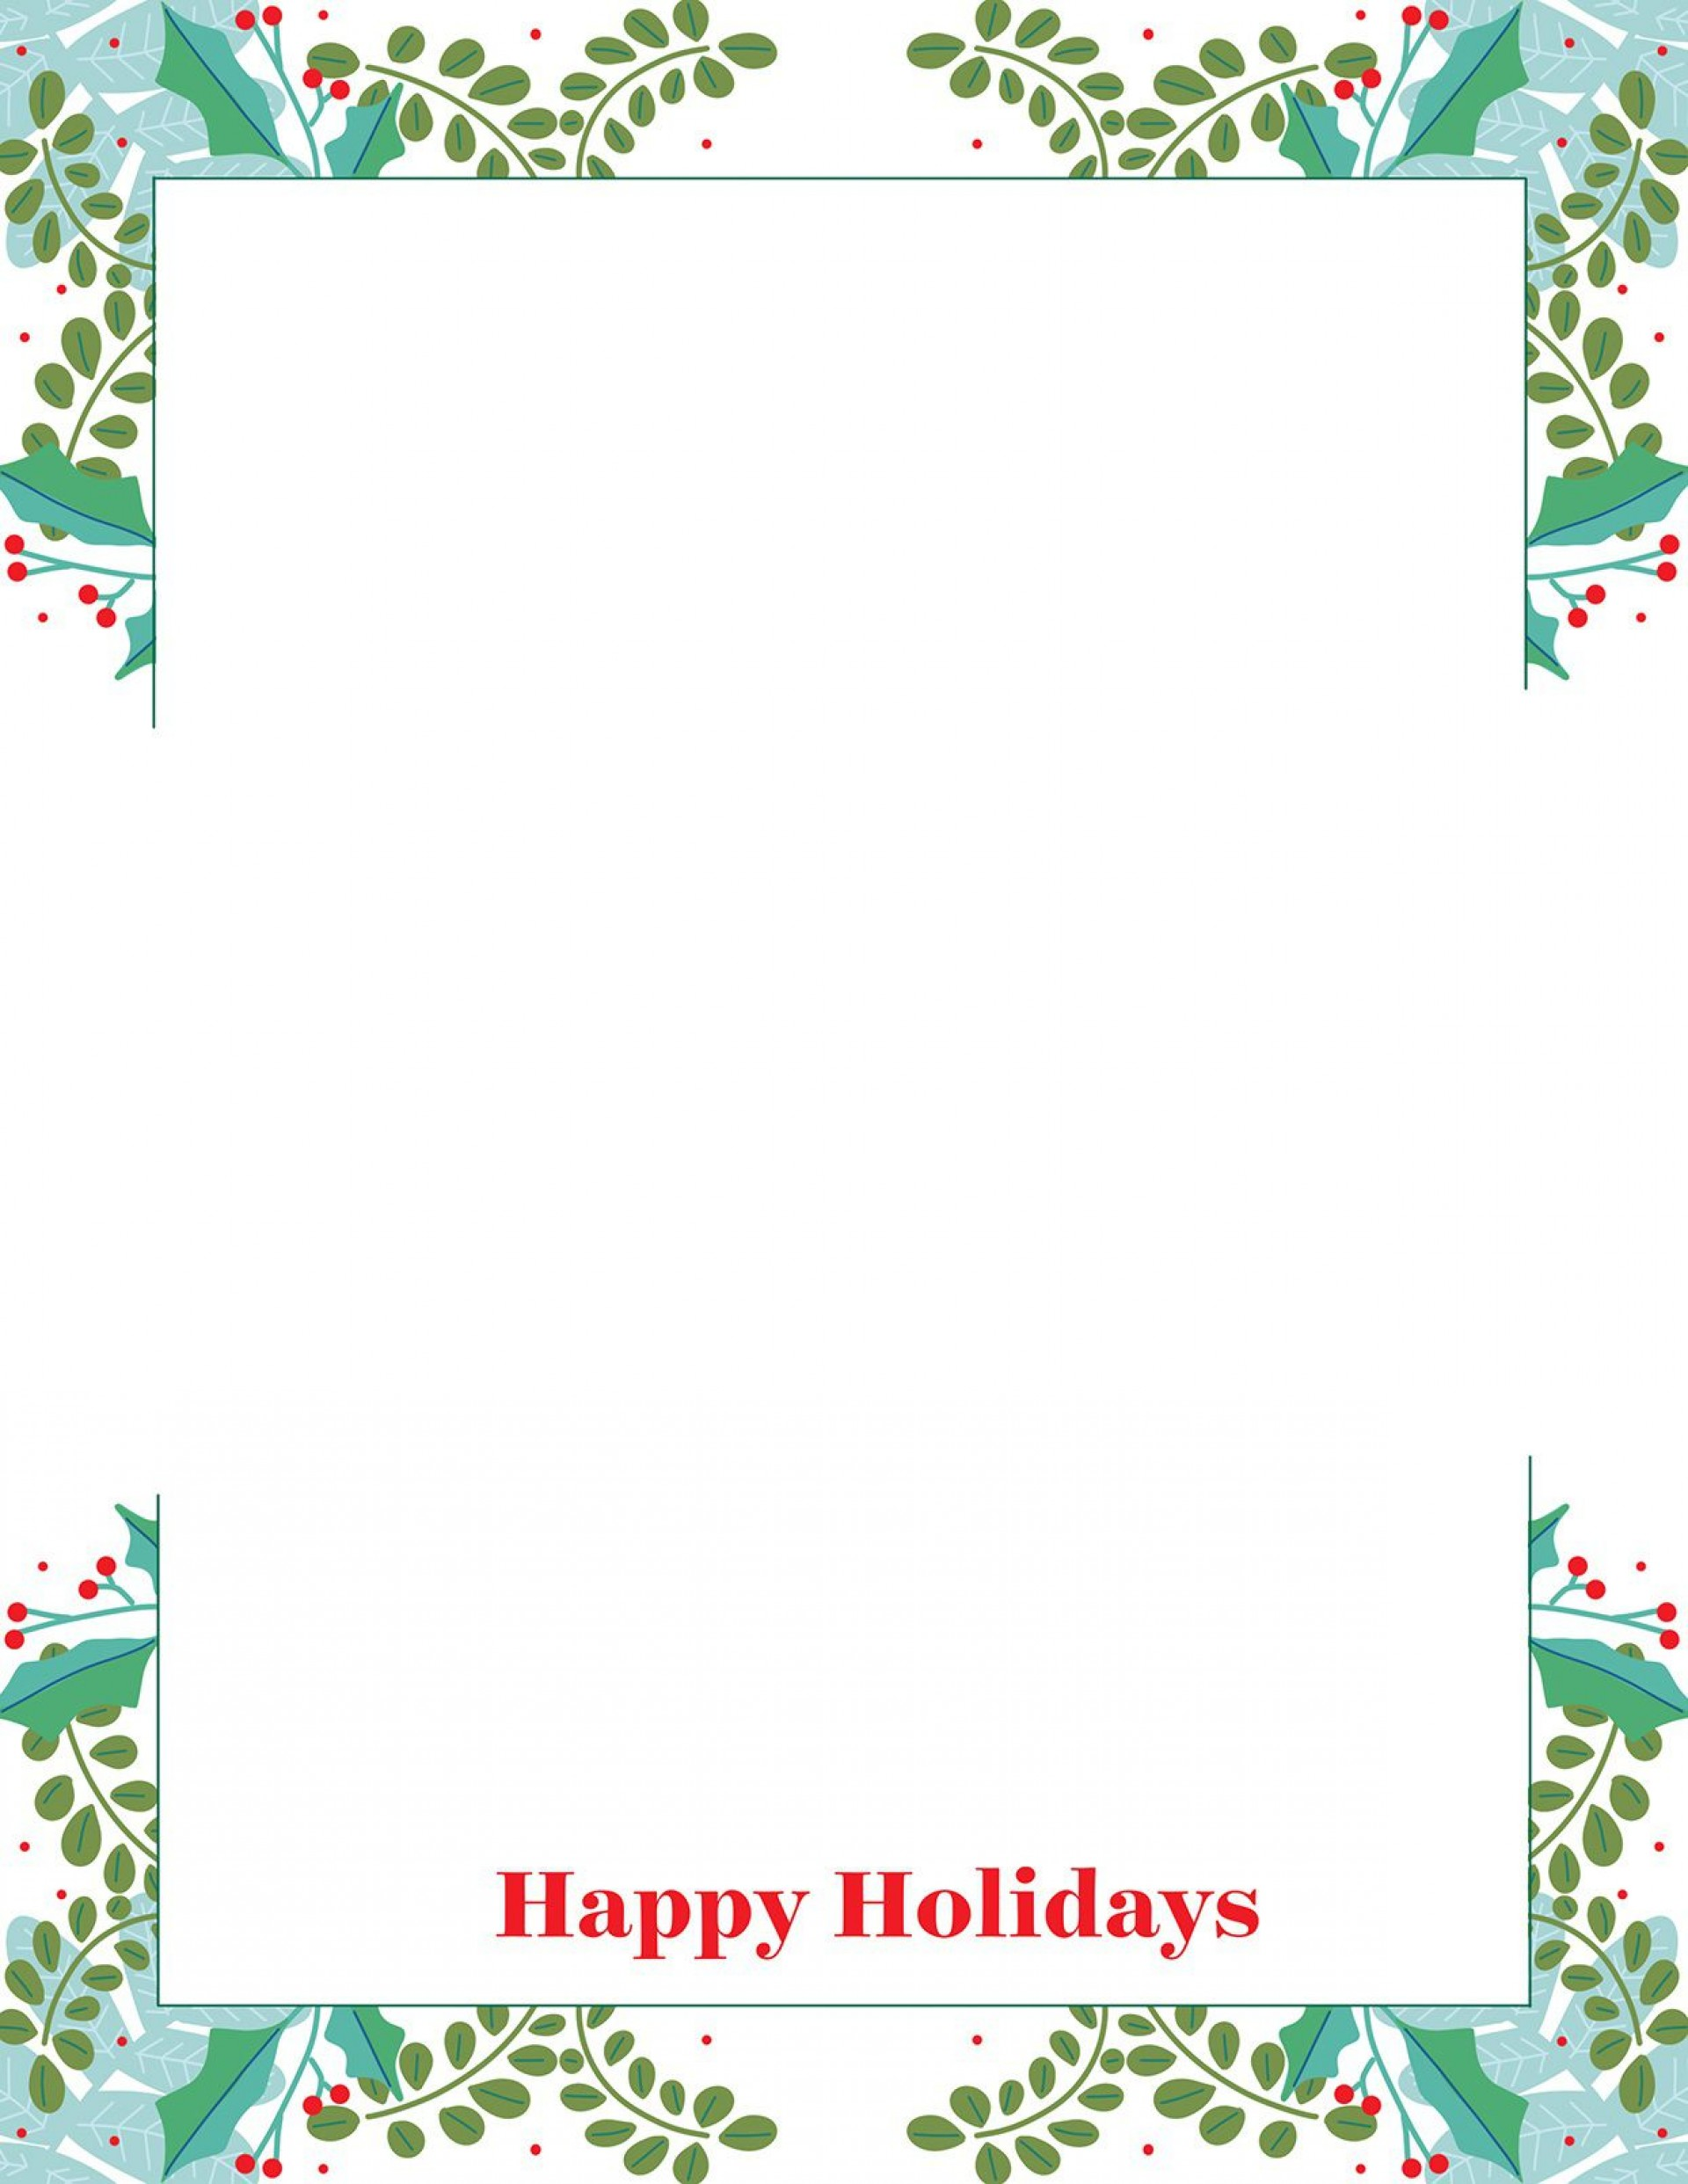 013 Surprising Free Christma Letter Template For Microsoft Word Photo  Downloadable Newsletter1920